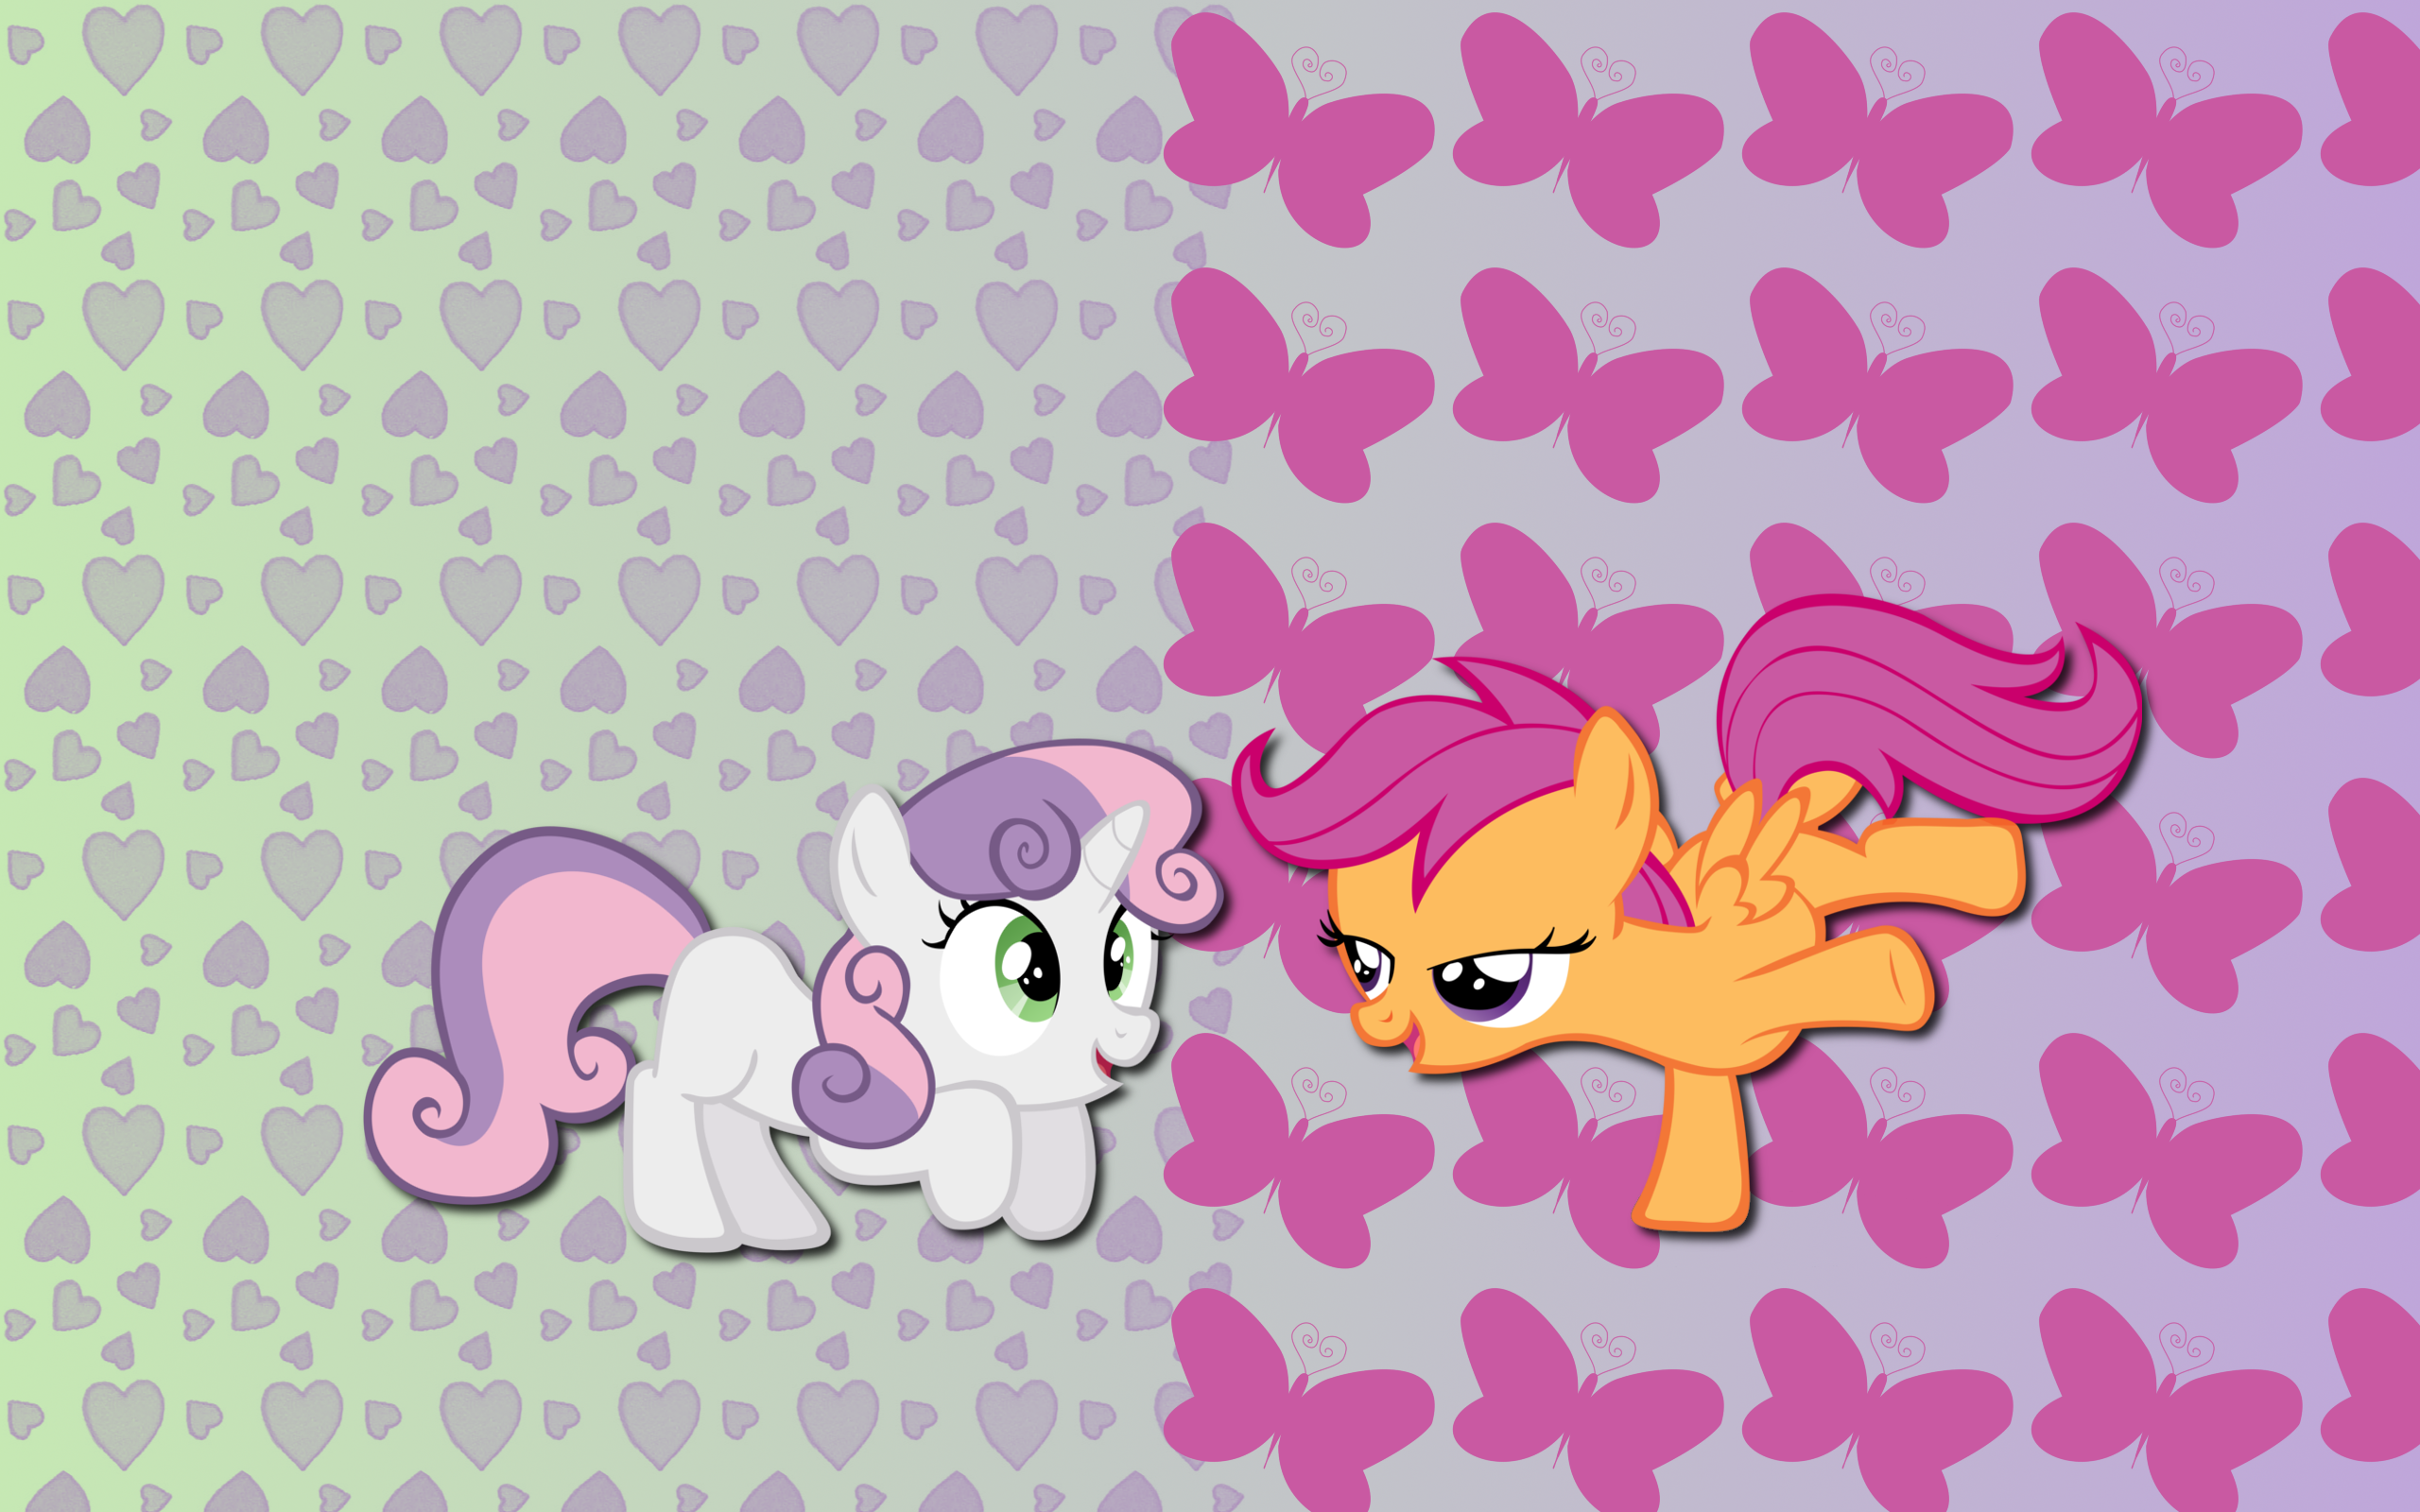 ScootaBelle wallpaper by AliceHumanSacrifice0, M99moron and Spaceponies